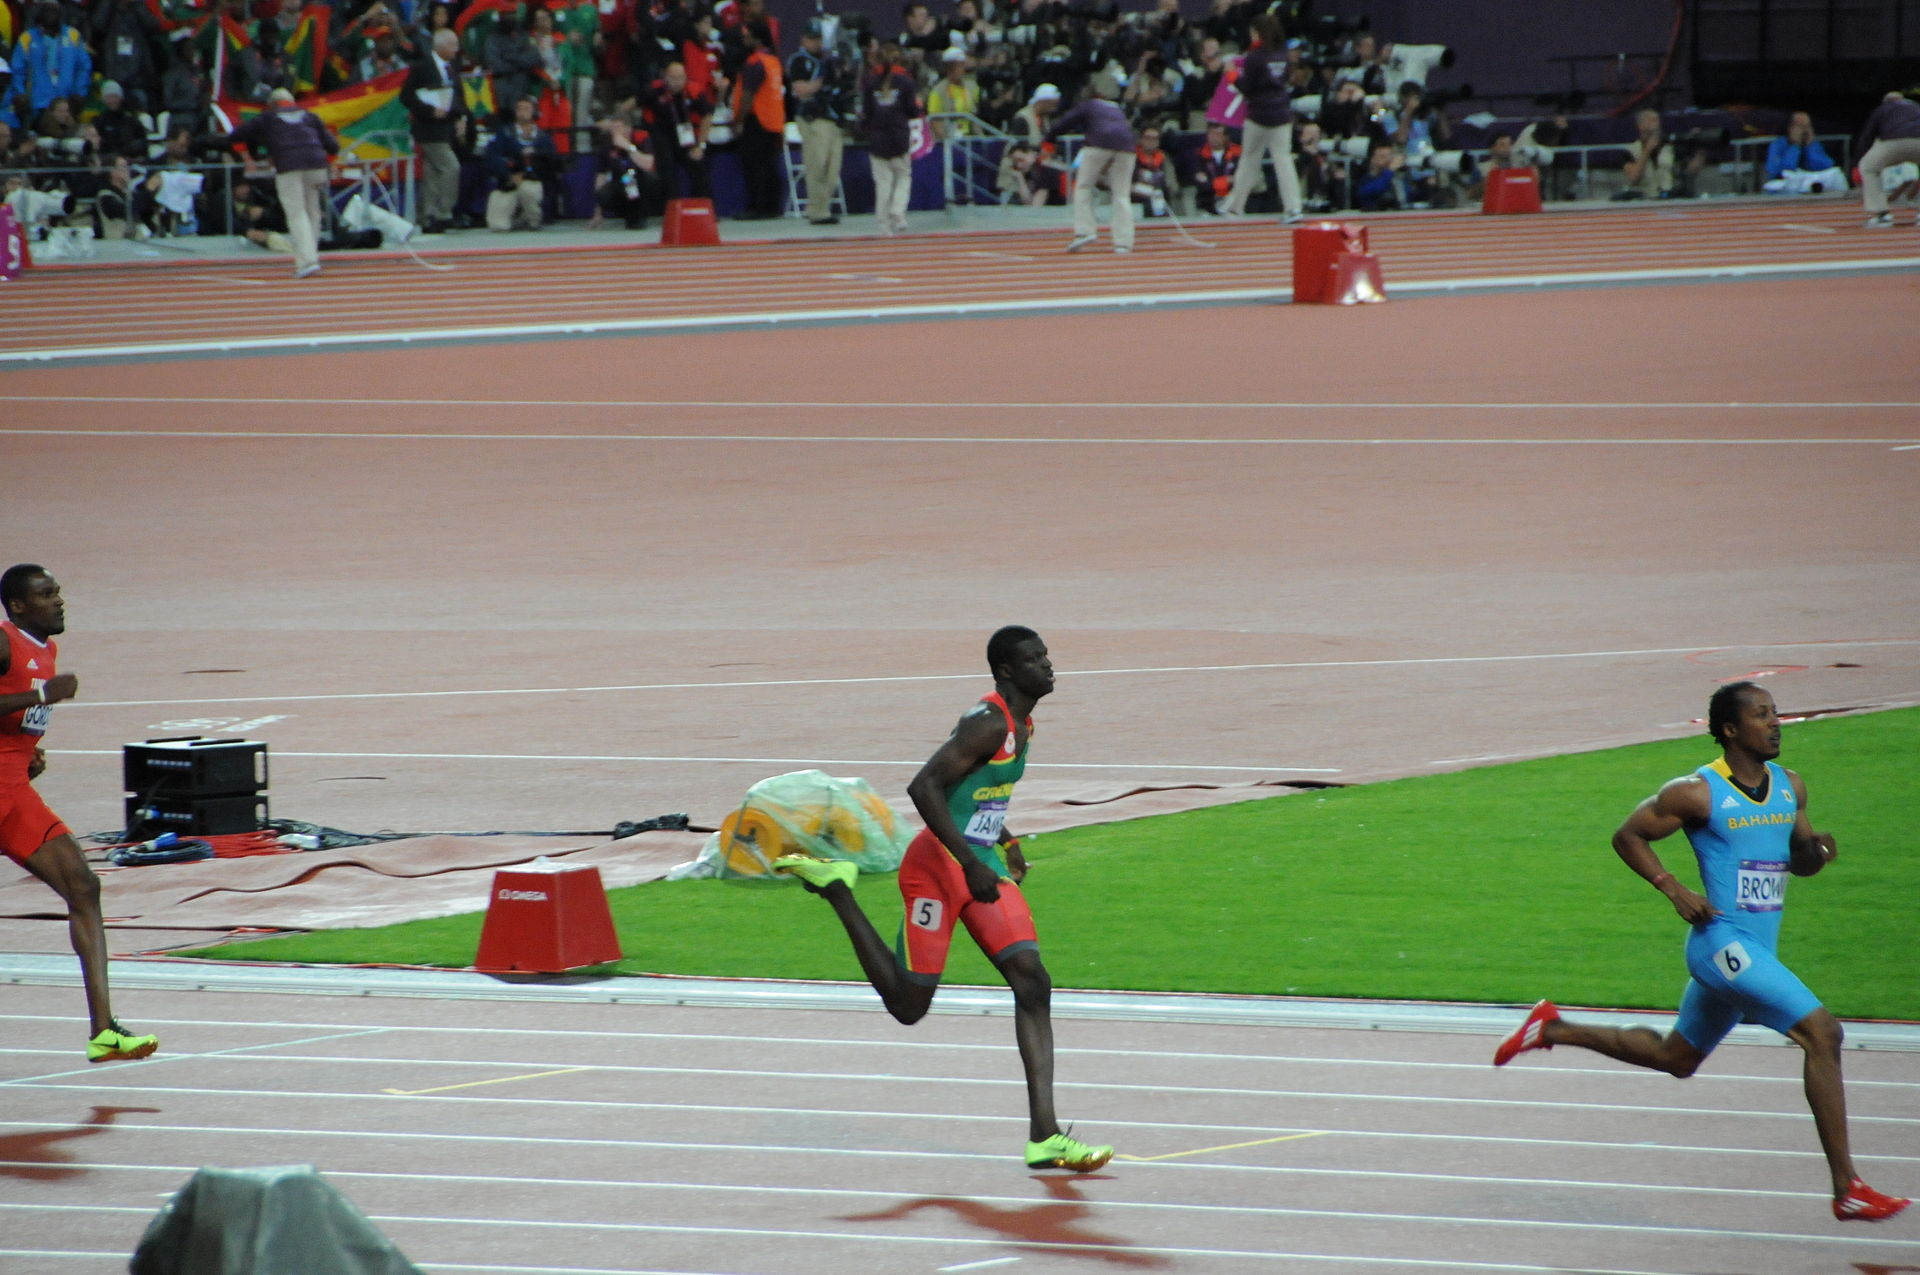 athletics at the 2012 summer olympics � mens 400 metres